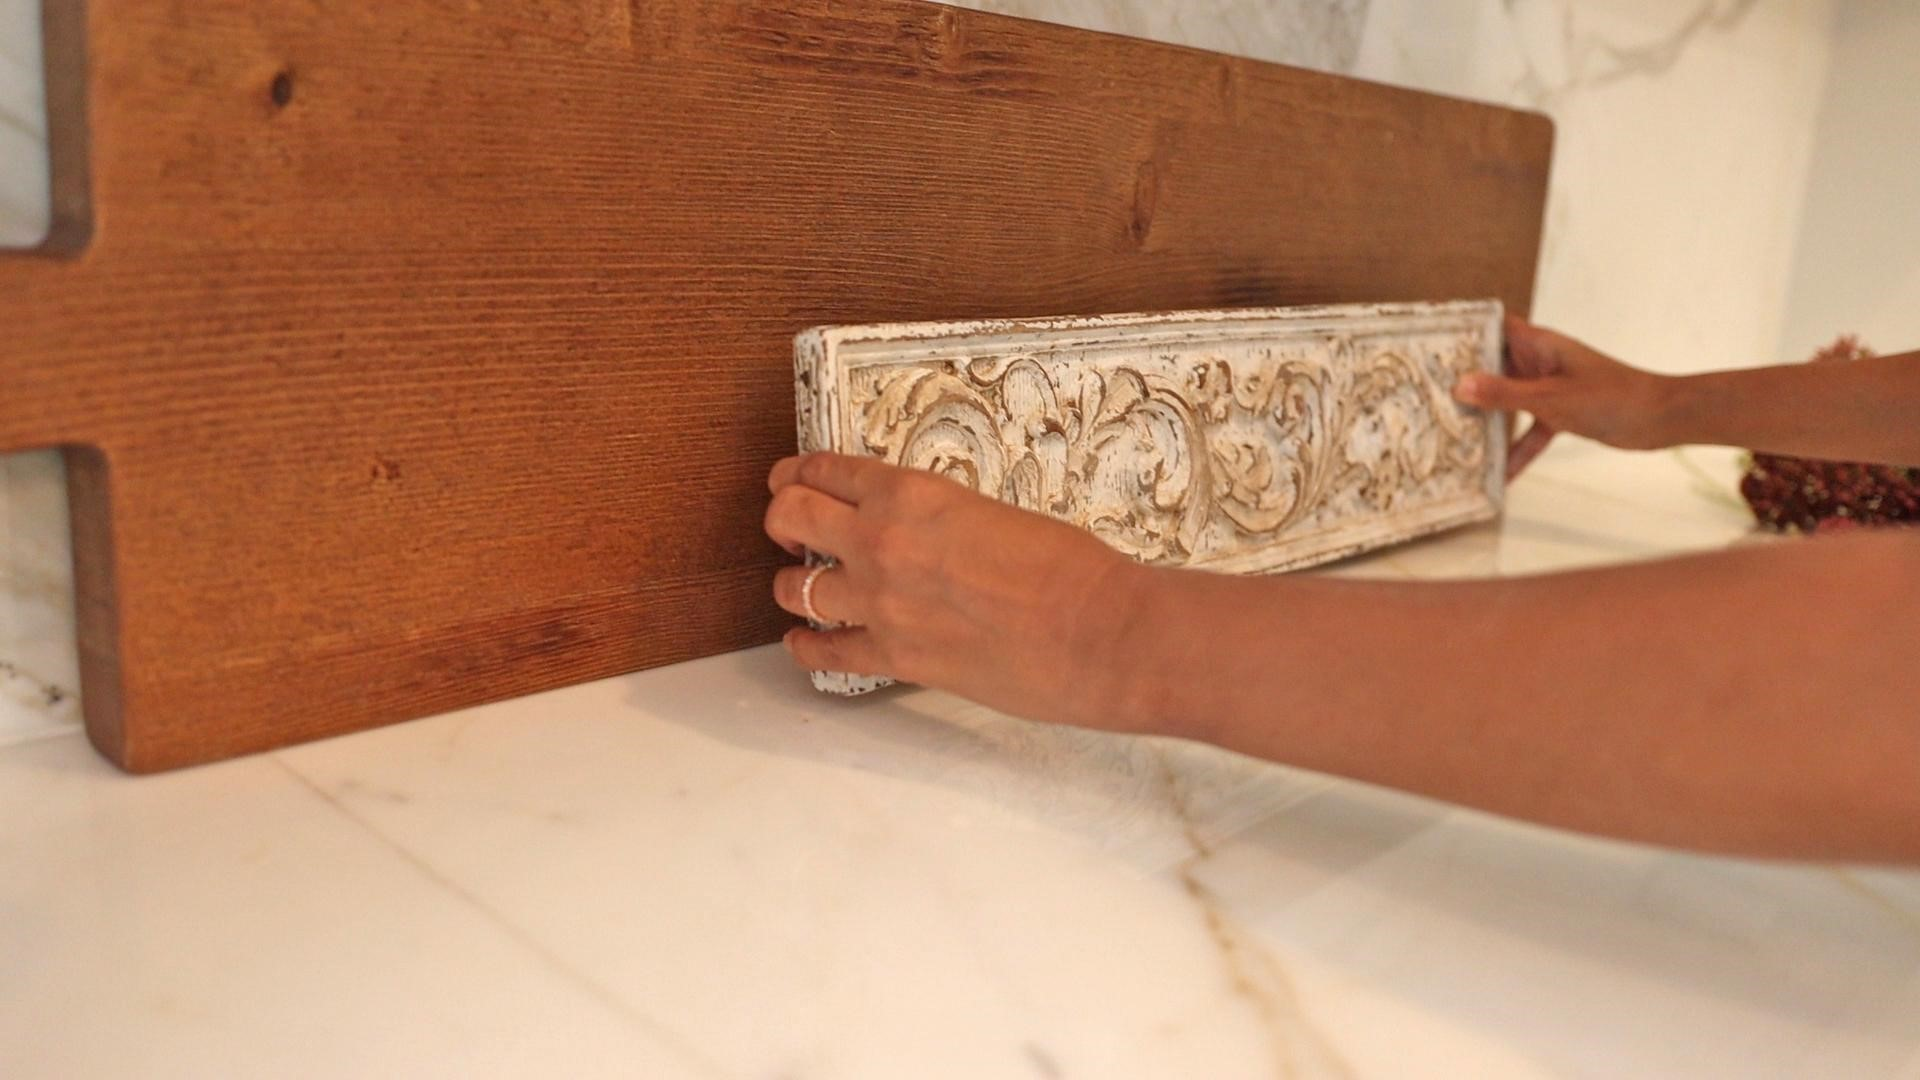 Large wooden bread board next to the short, long decorative white paint chipped panel